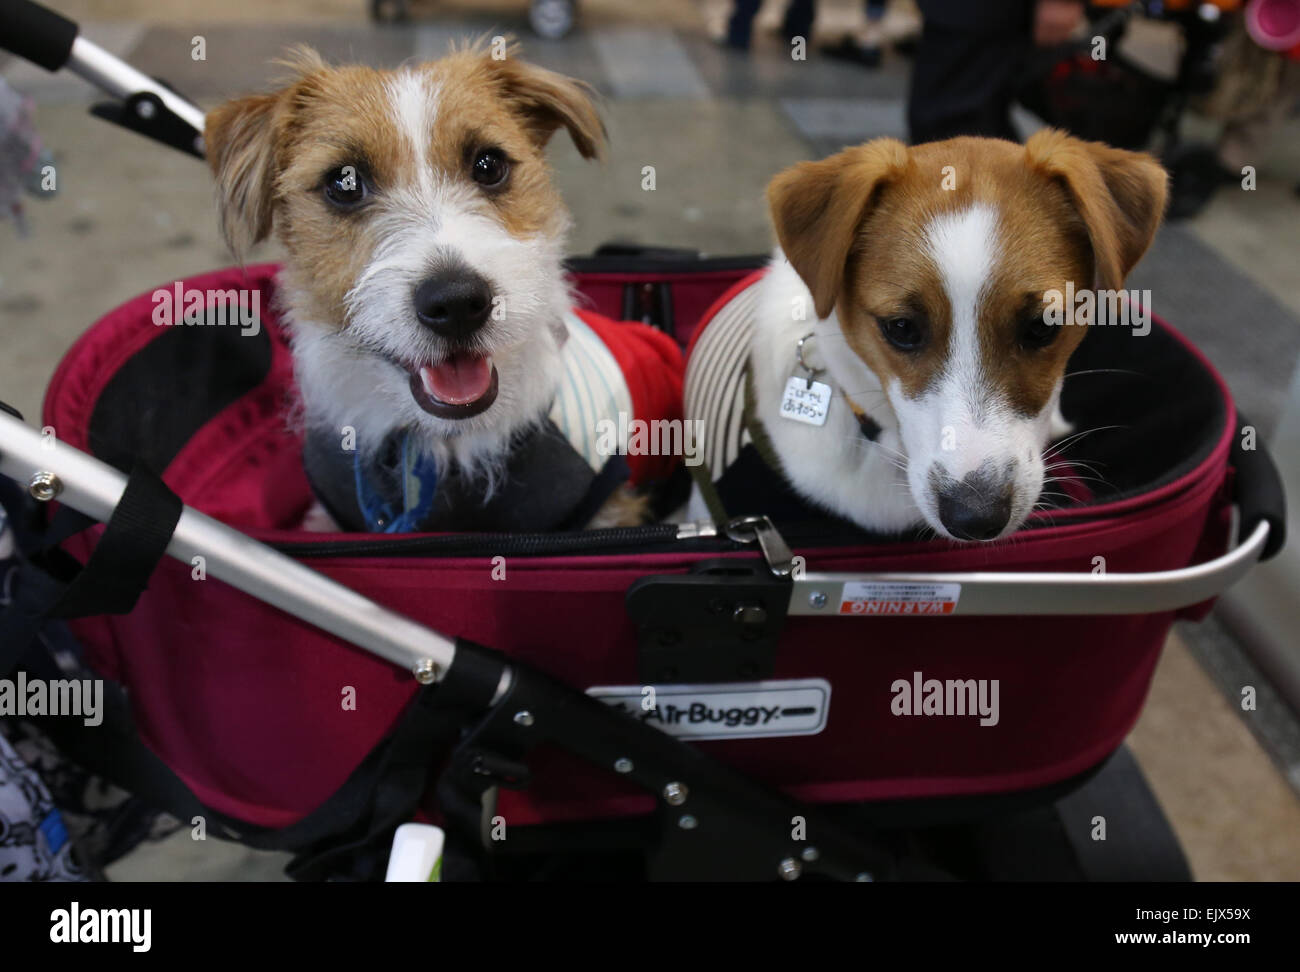 Tokyo, Japan  2nd Apr, 2015  Dogs sit in a trolley during